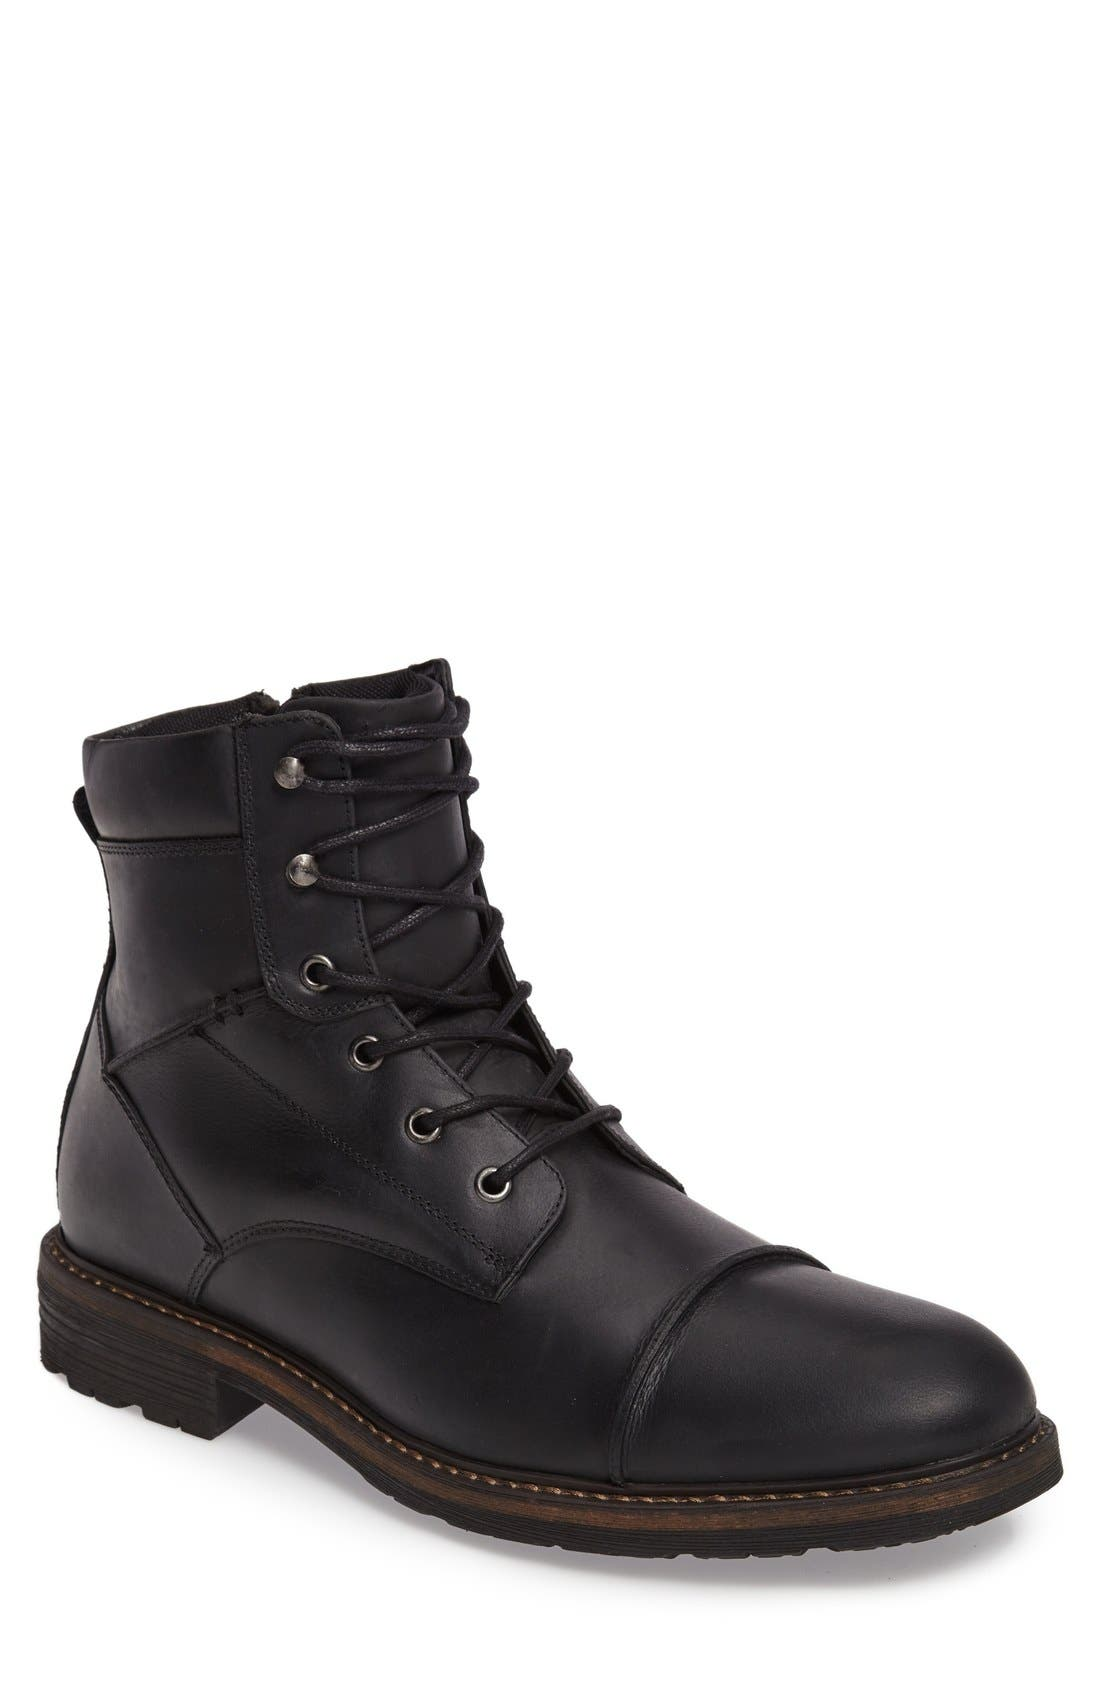 Derek Cap Toe Boot,                         Main,                         color, Black Leather